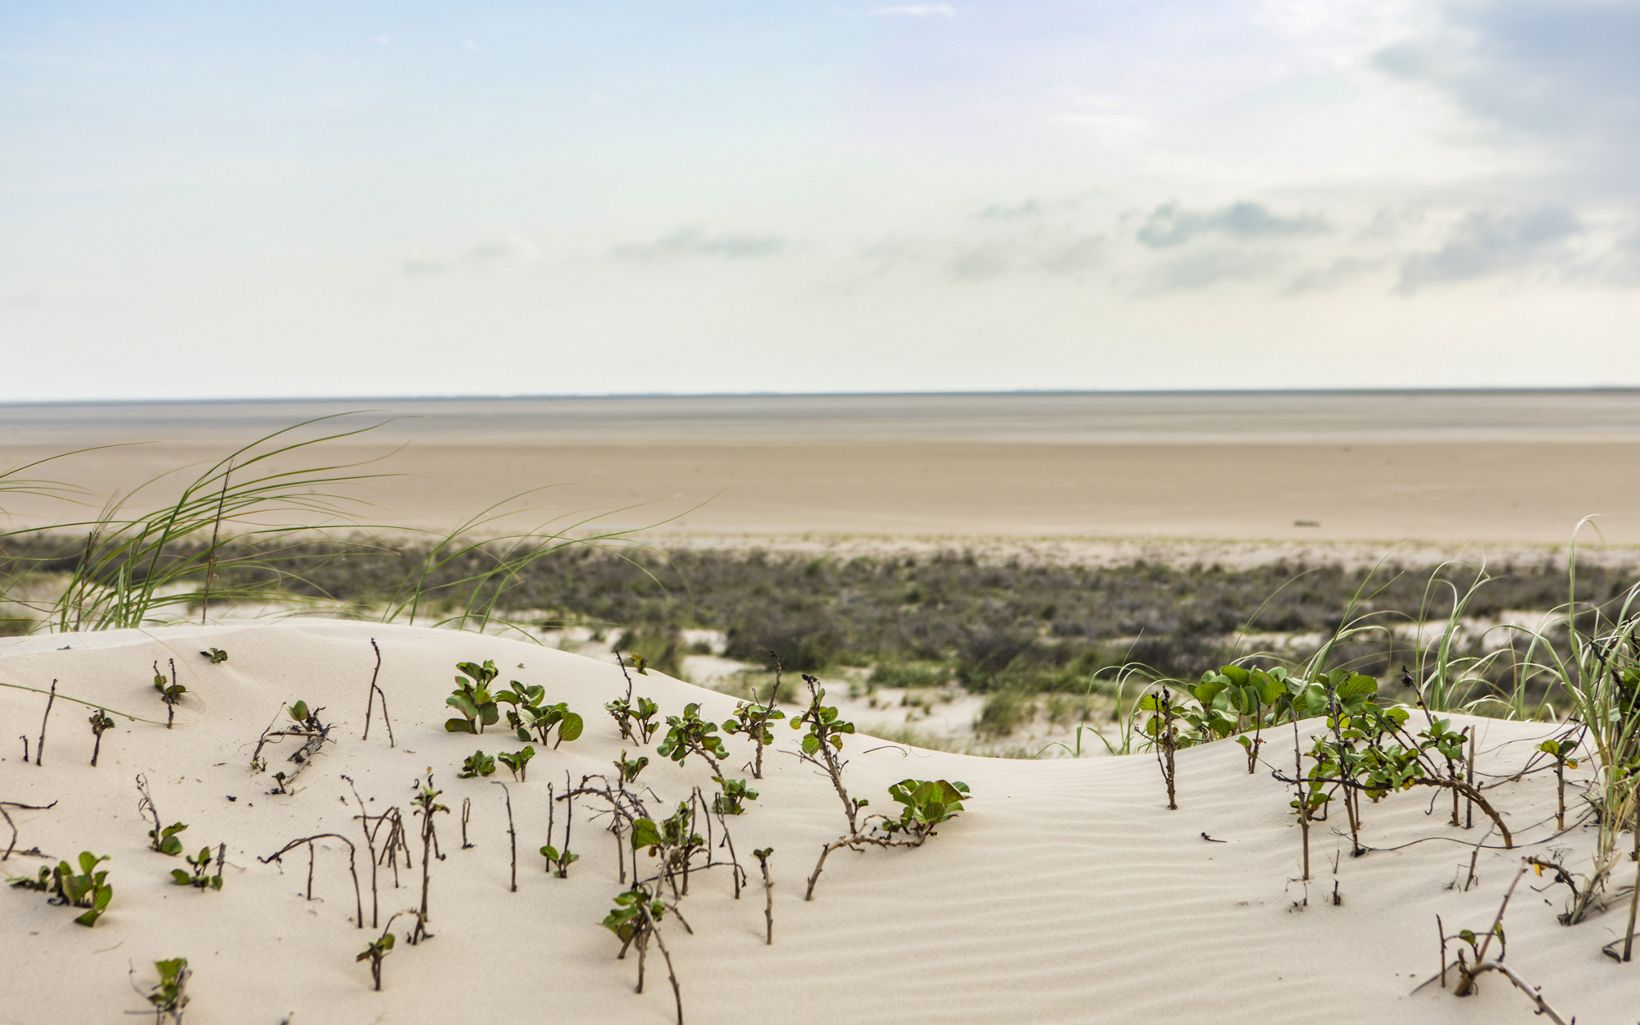 White sand dunes with plants growing on them and the ocean in the distance.